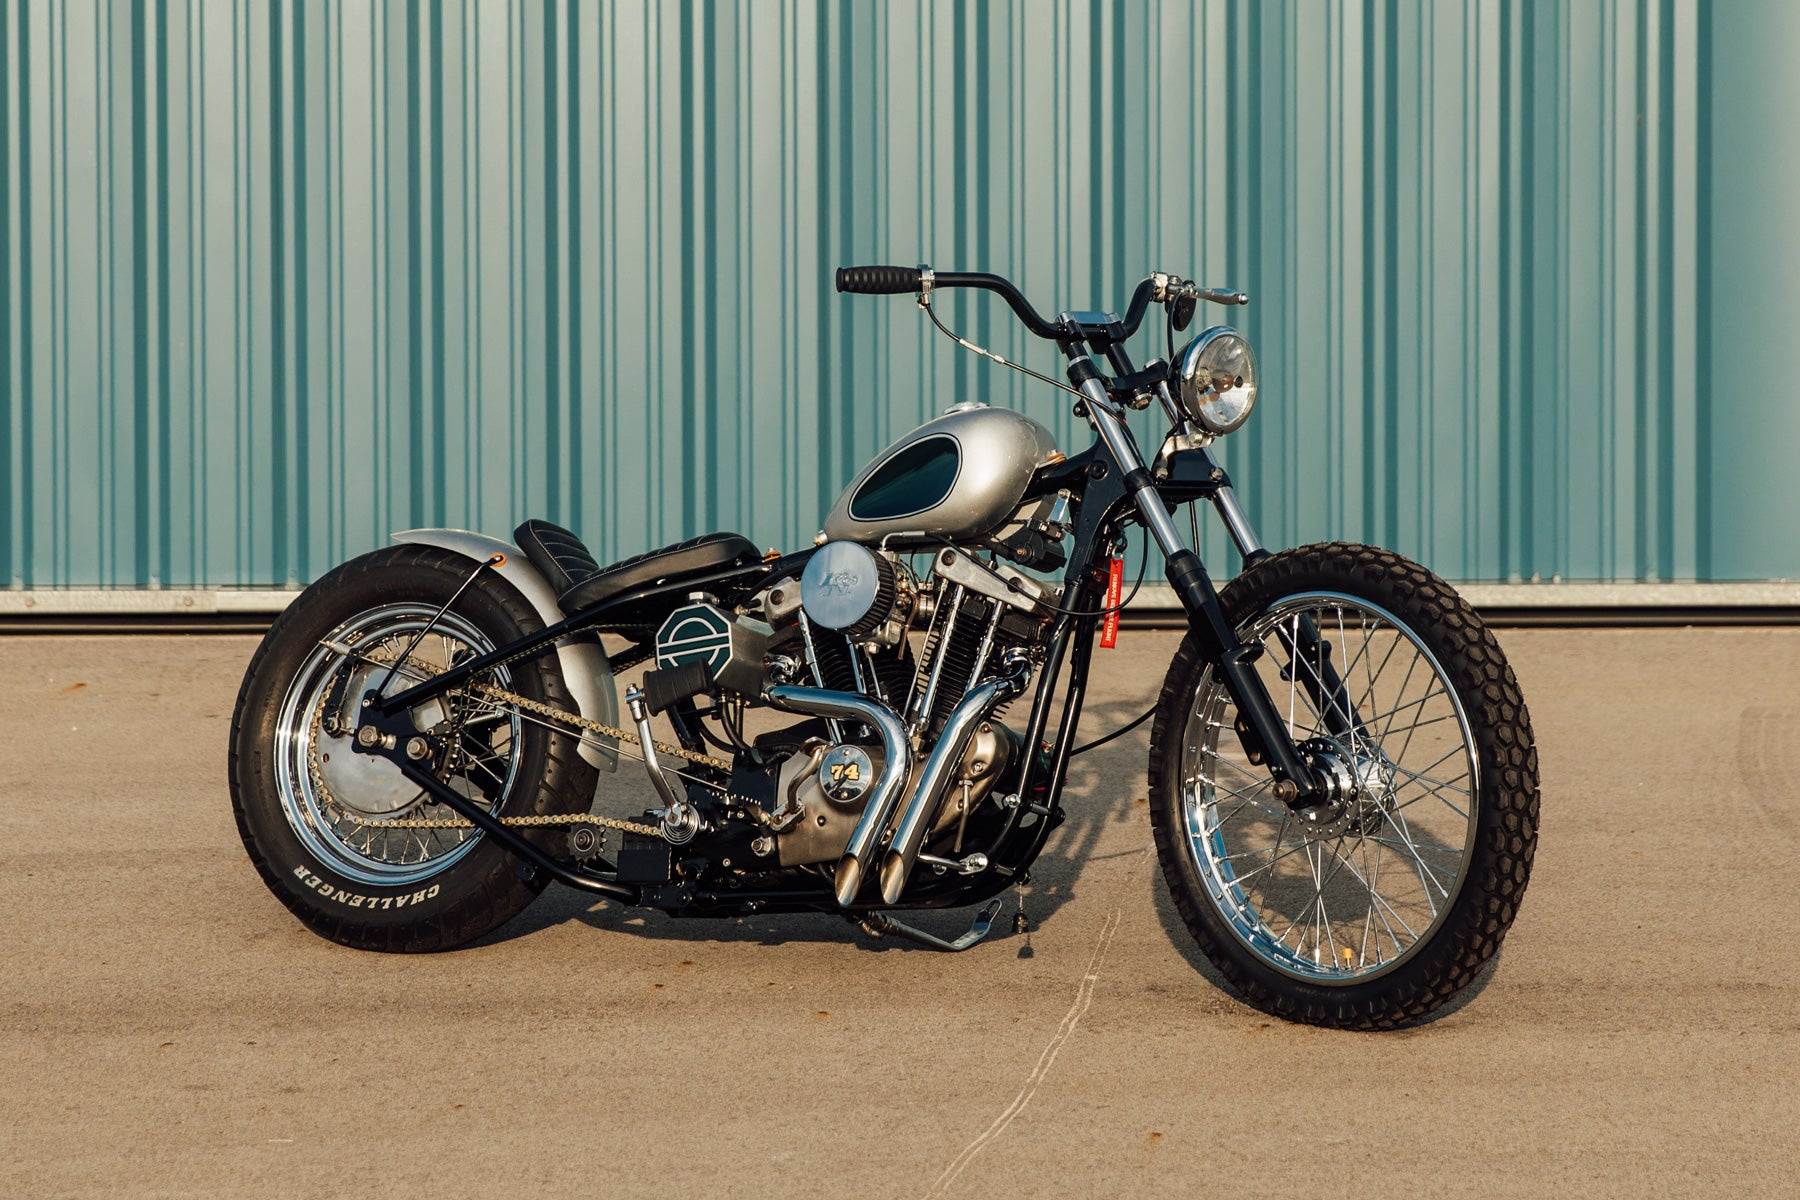 Harley-Davidson Sportster Ironhead Custom Motorcycle Beaver County Airport Pittsburgh